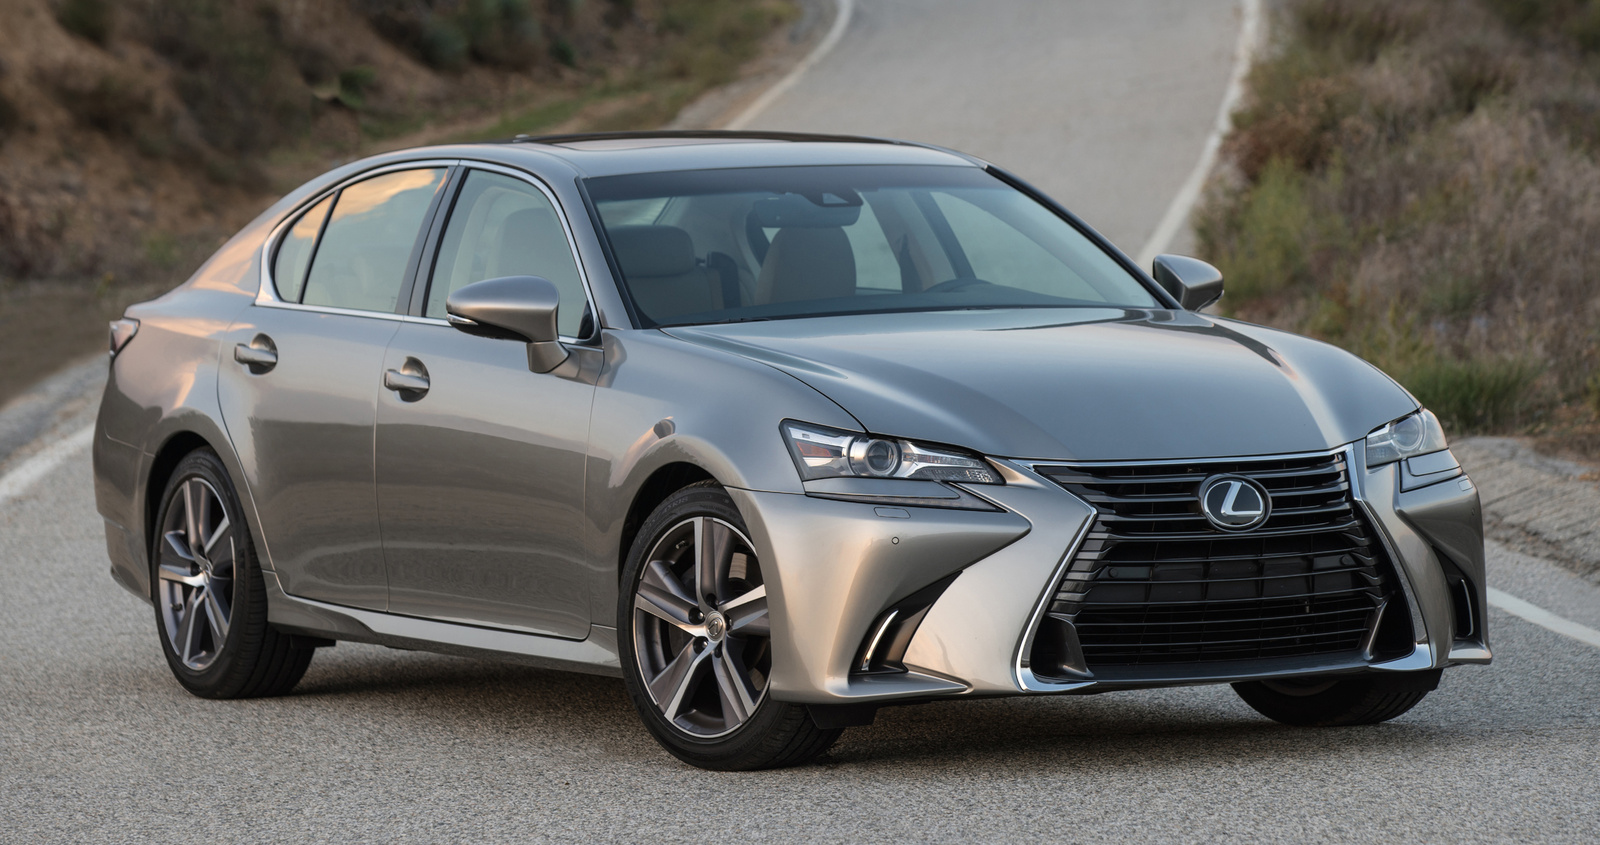 Ls 460 For Sale >> 2016 Lexus GS 200t - Review - CarGurus